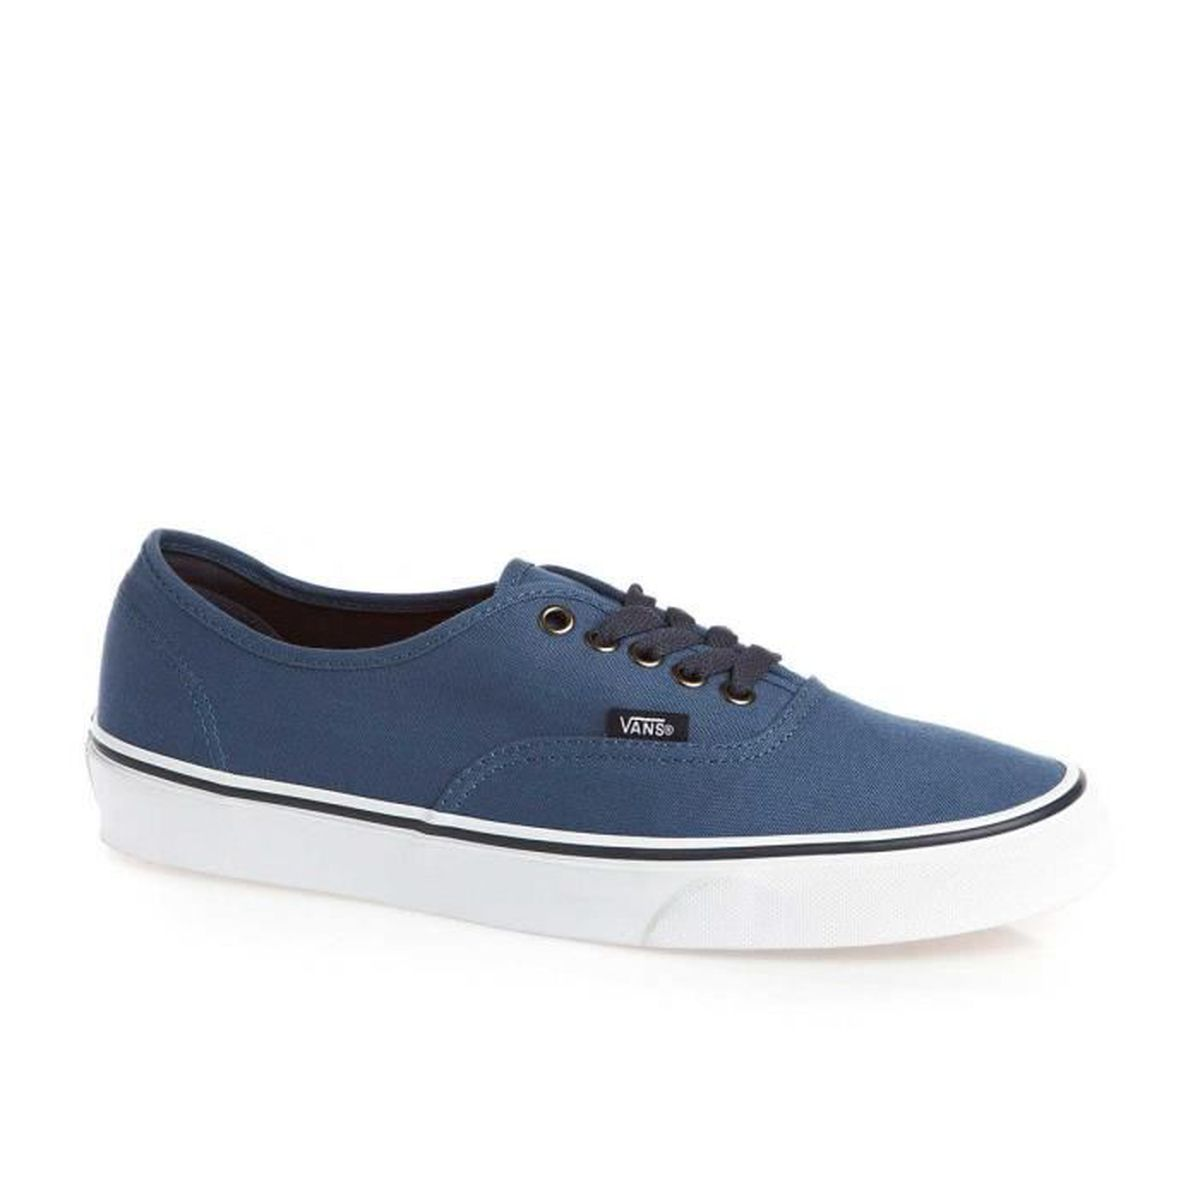 Chaussure Basse VANS Authentic Navy Homme Pointure 40